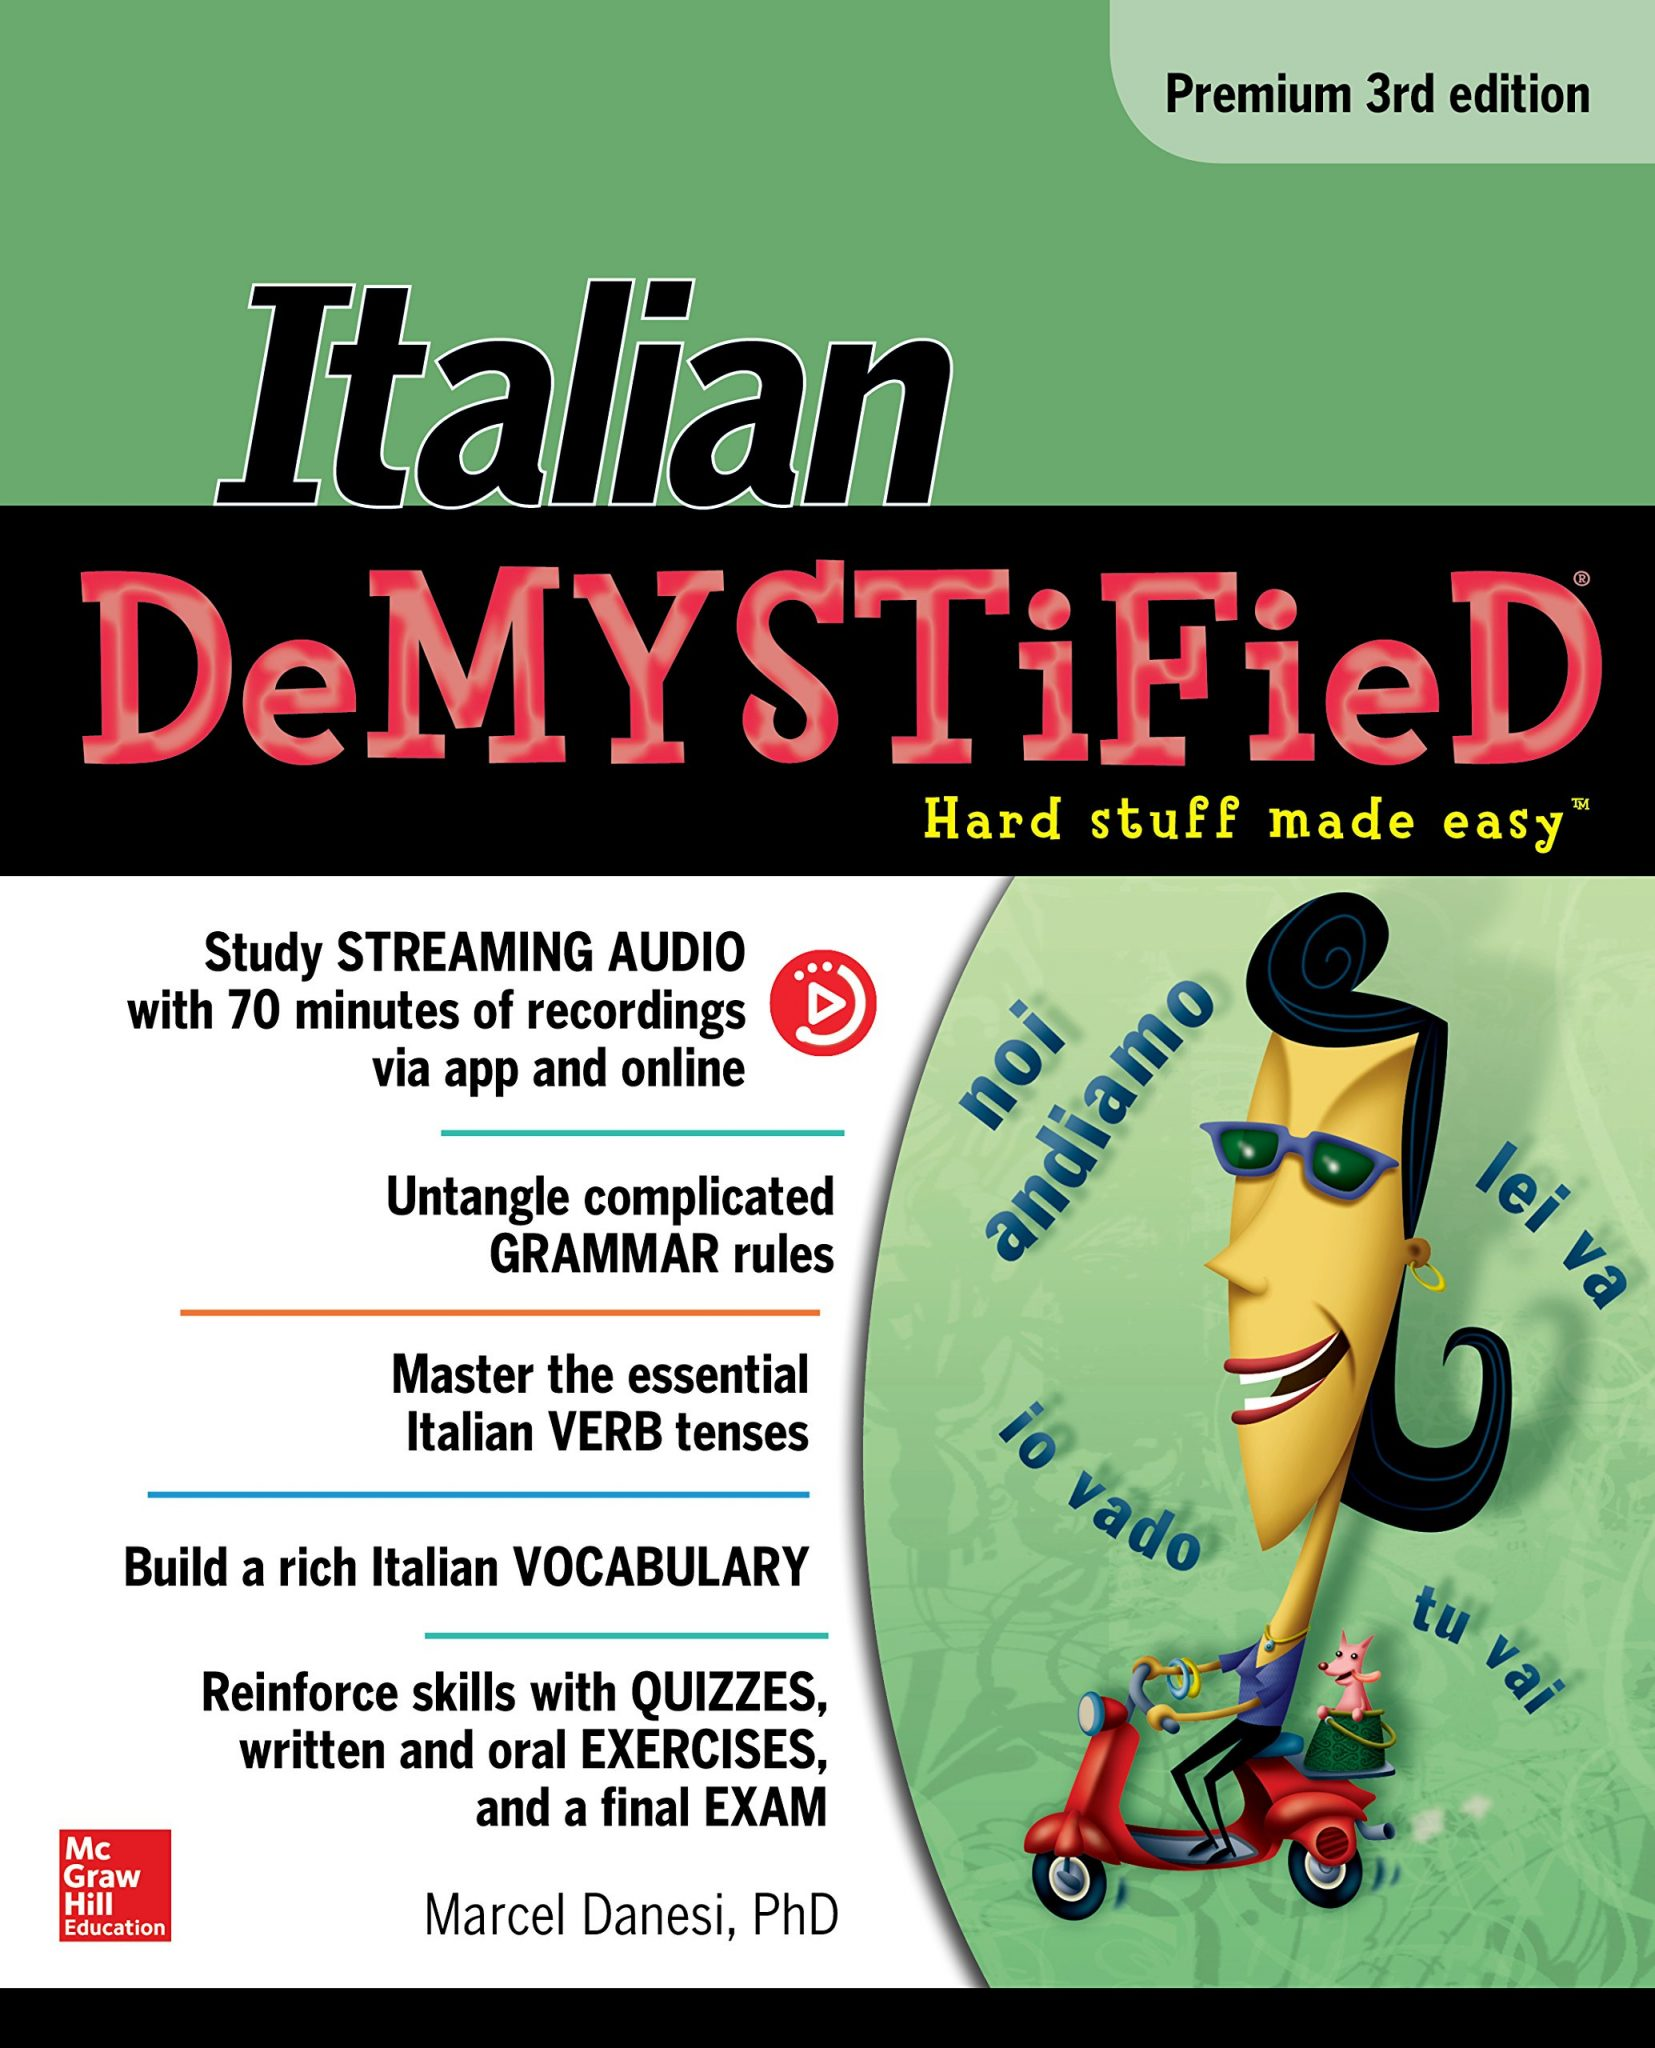 download Italian Demystified, Premium 3rd Edition